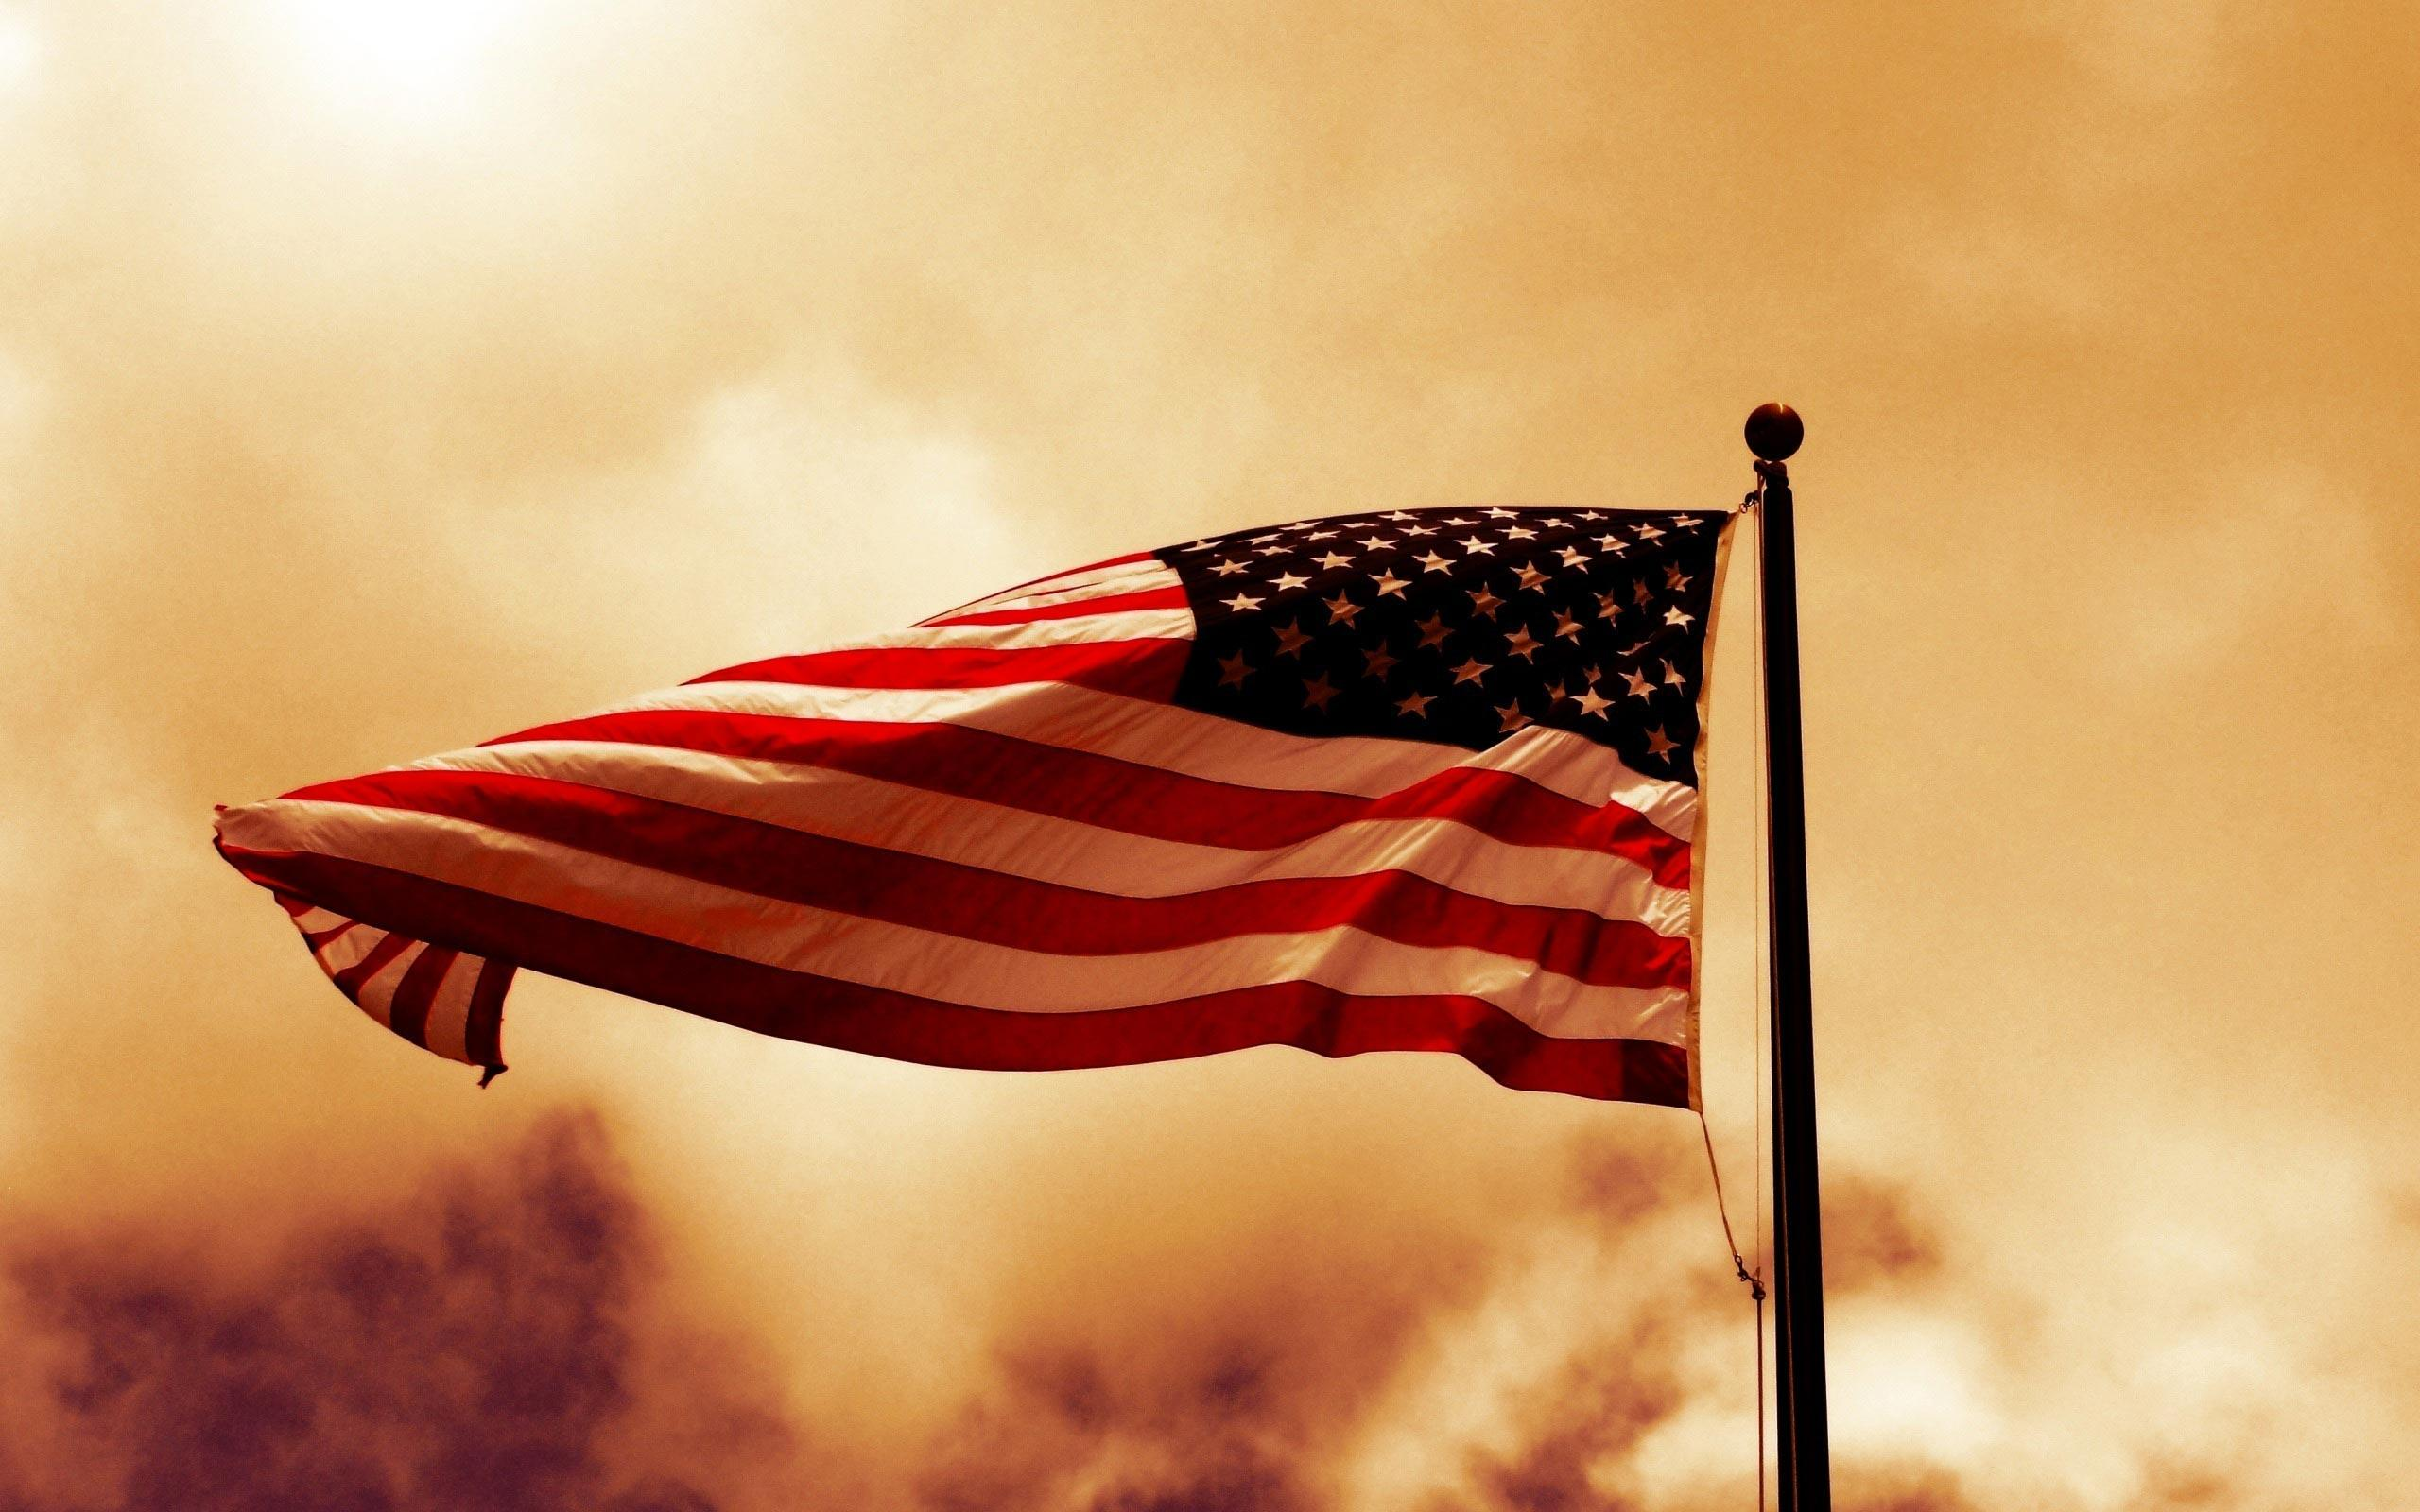 Hd wallpaper usa - Wallpapers For American Flag Background Hd